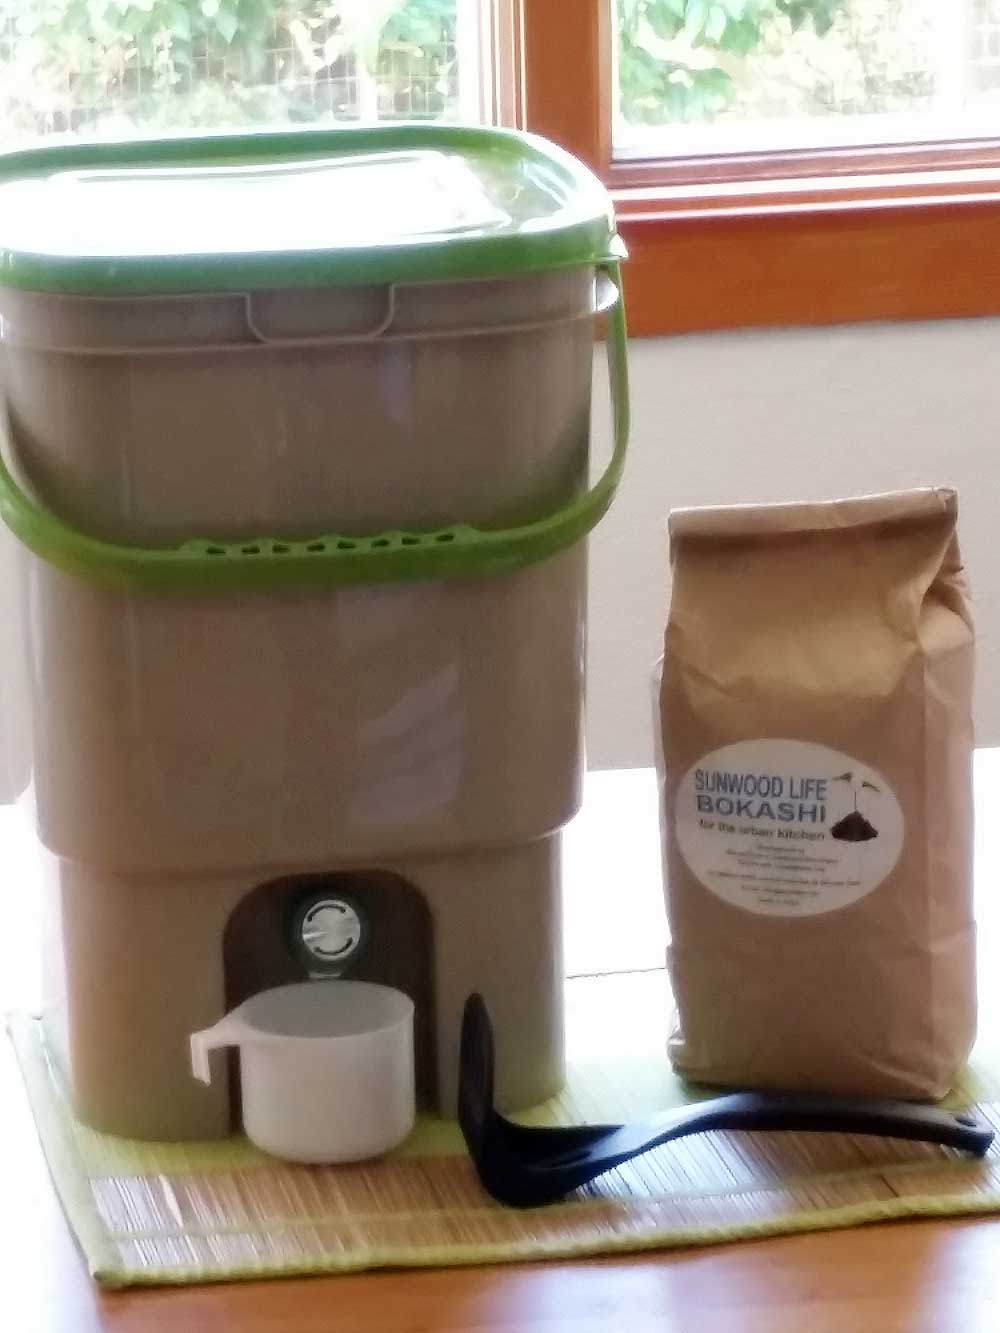 Bokashi system: pail with tight lid and spigot, cup for Bokashi tea, implement for pressing down food waste materials, and Bokashi starter.